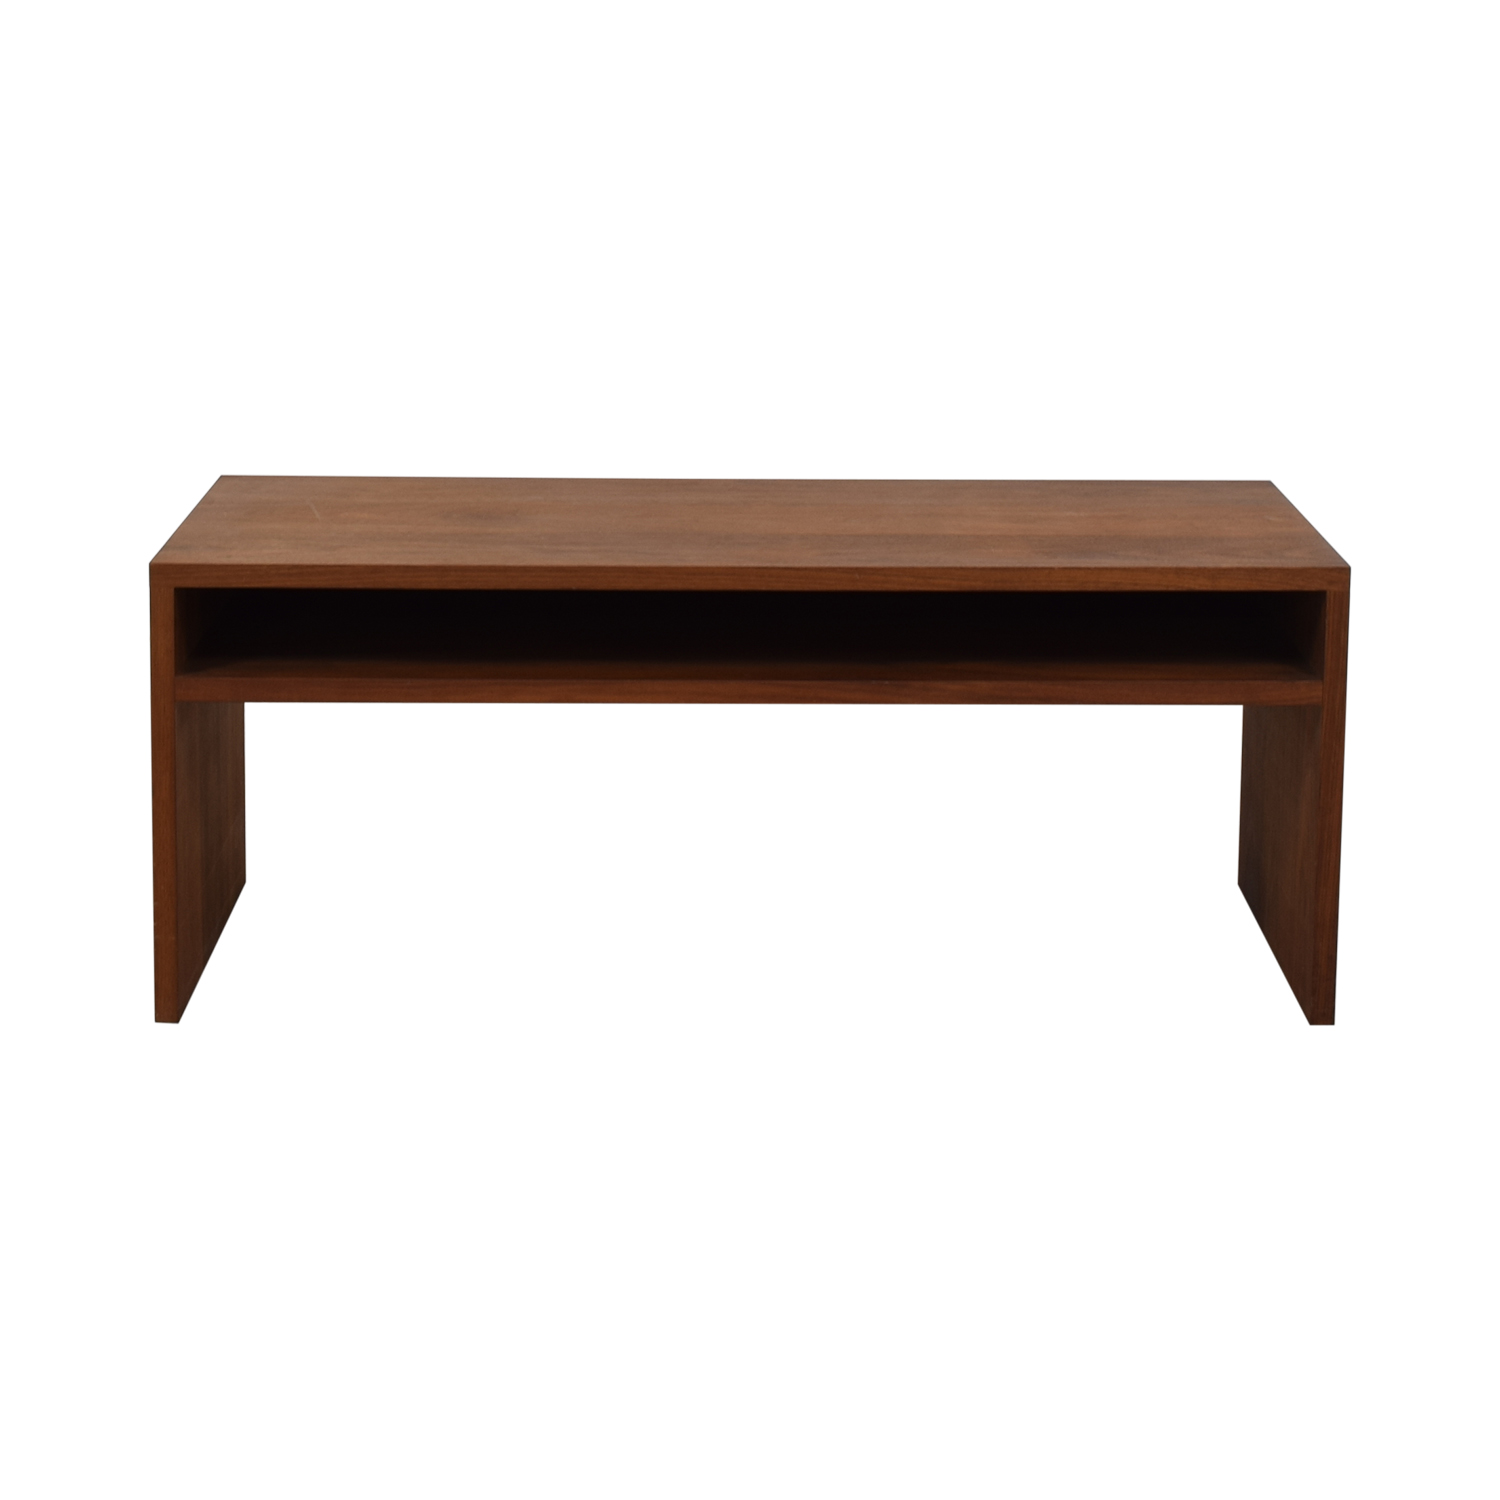 Custom Solid Walnut Coffee Table with Enclosed Shelf Space